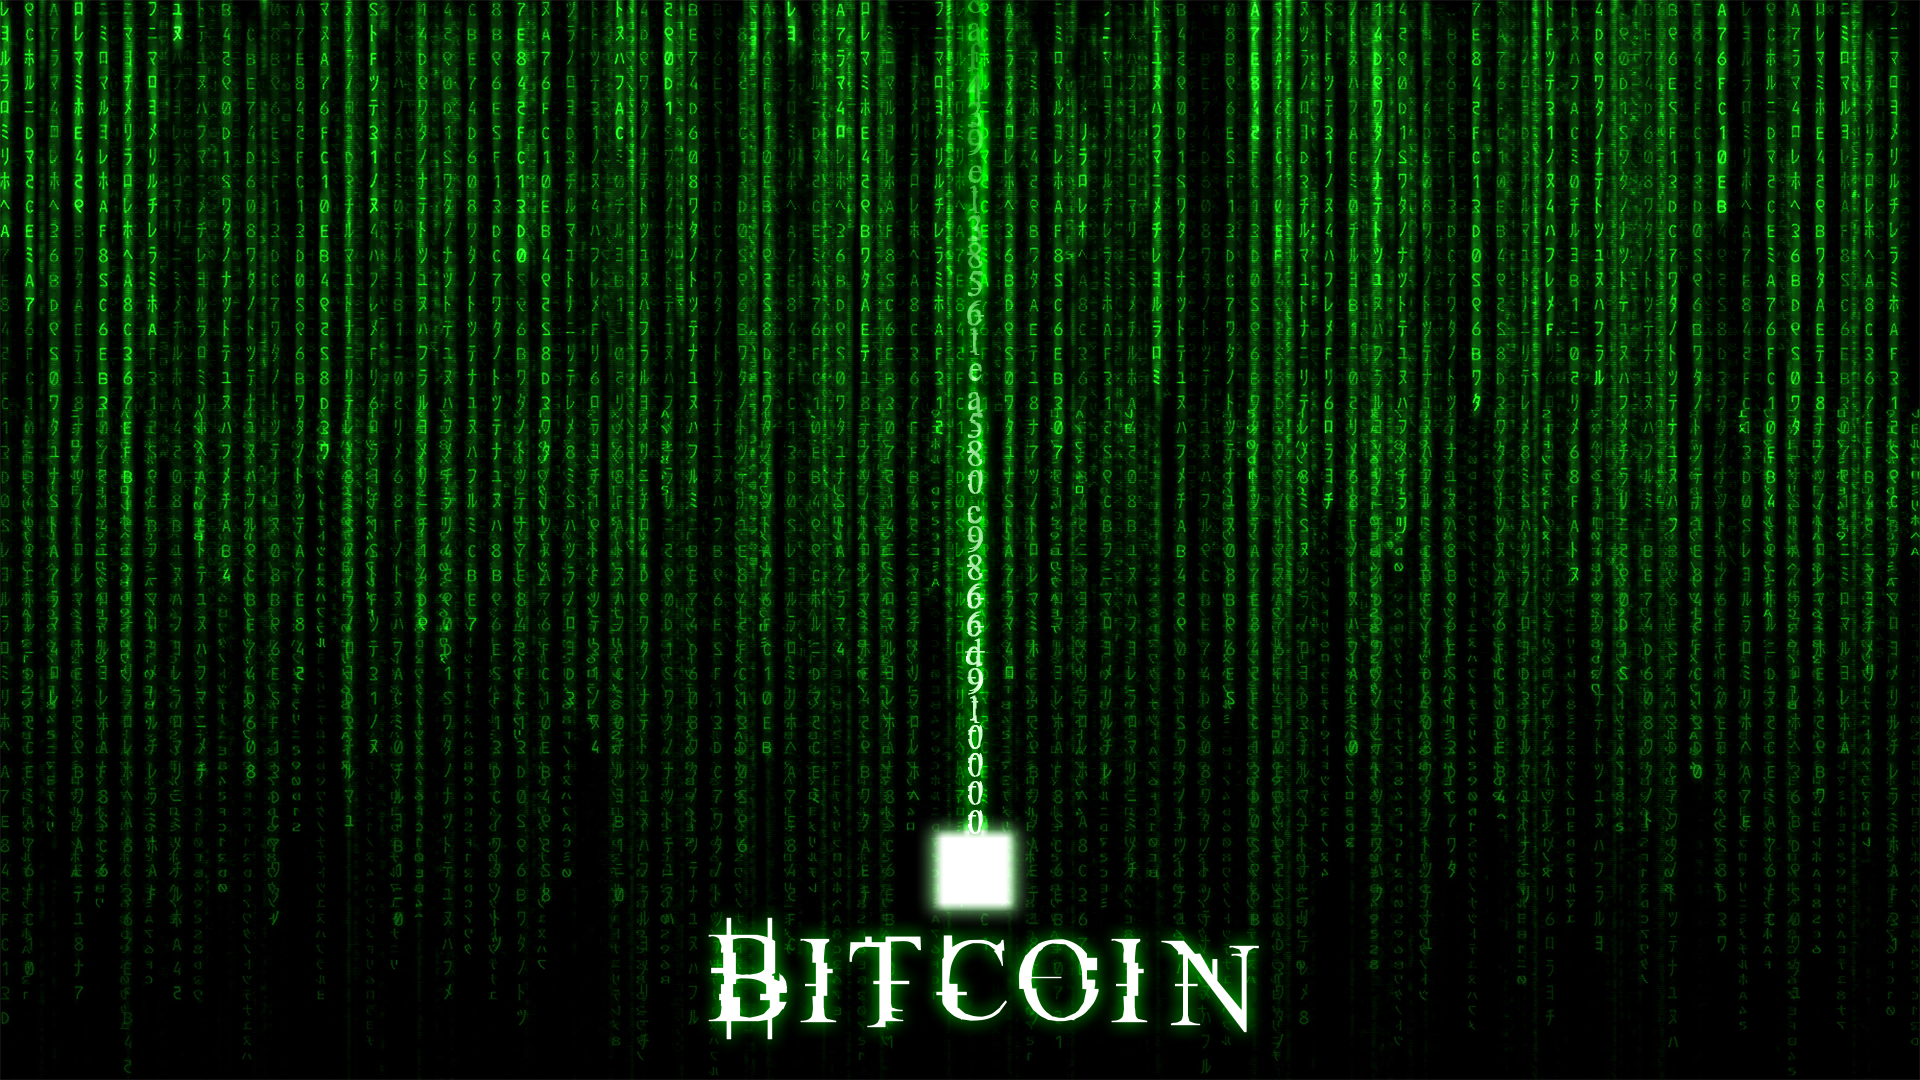 Bitcoins Are Like The Internet In The 80's |